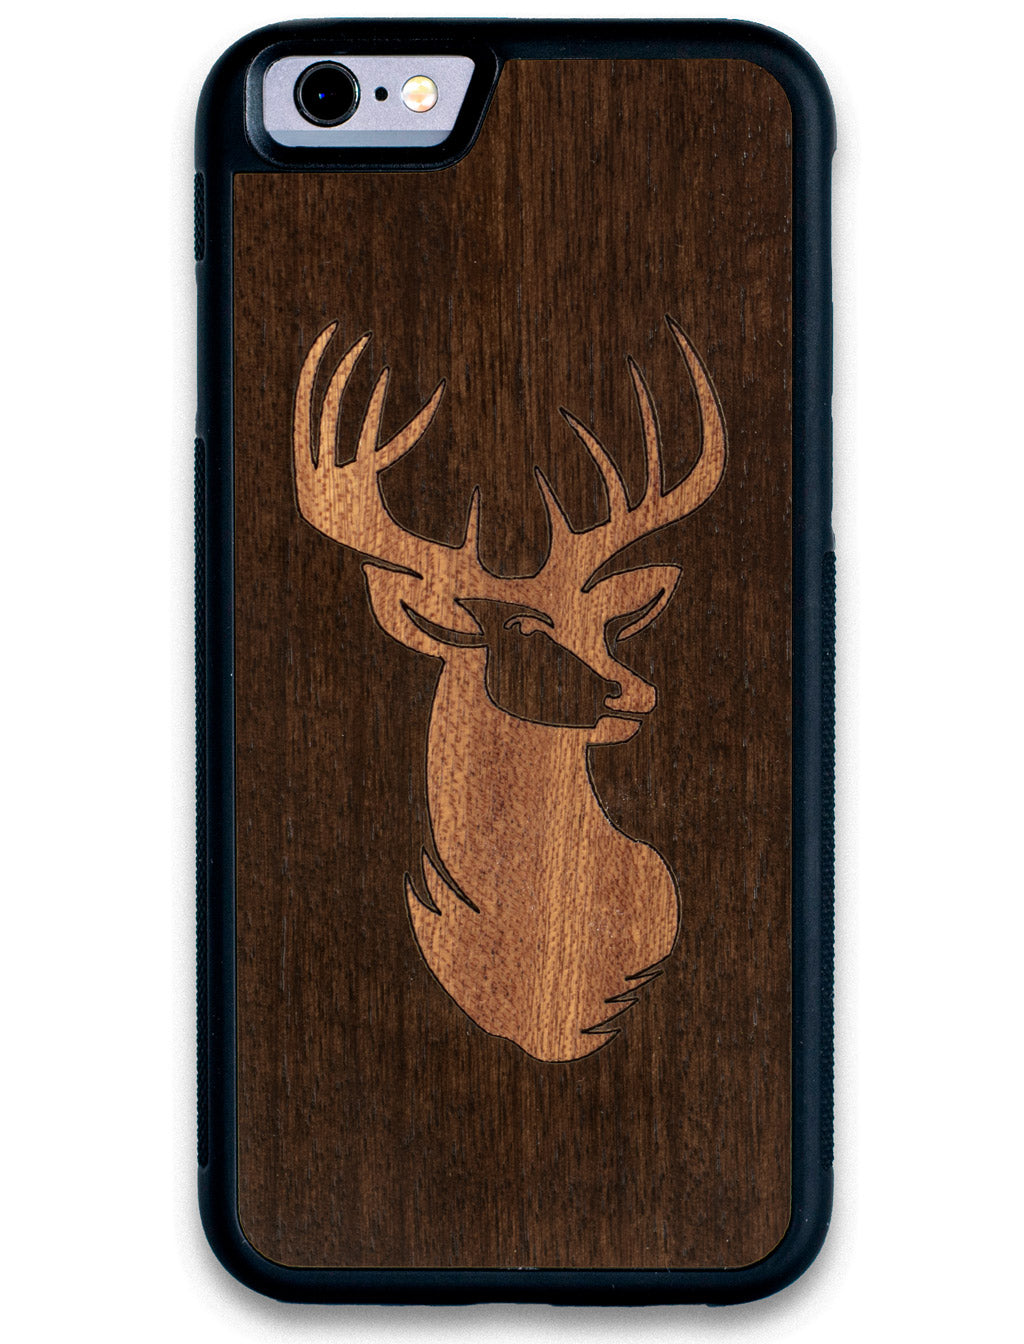 new products 3e22f a8552 DEER iPHONE 6 CASE